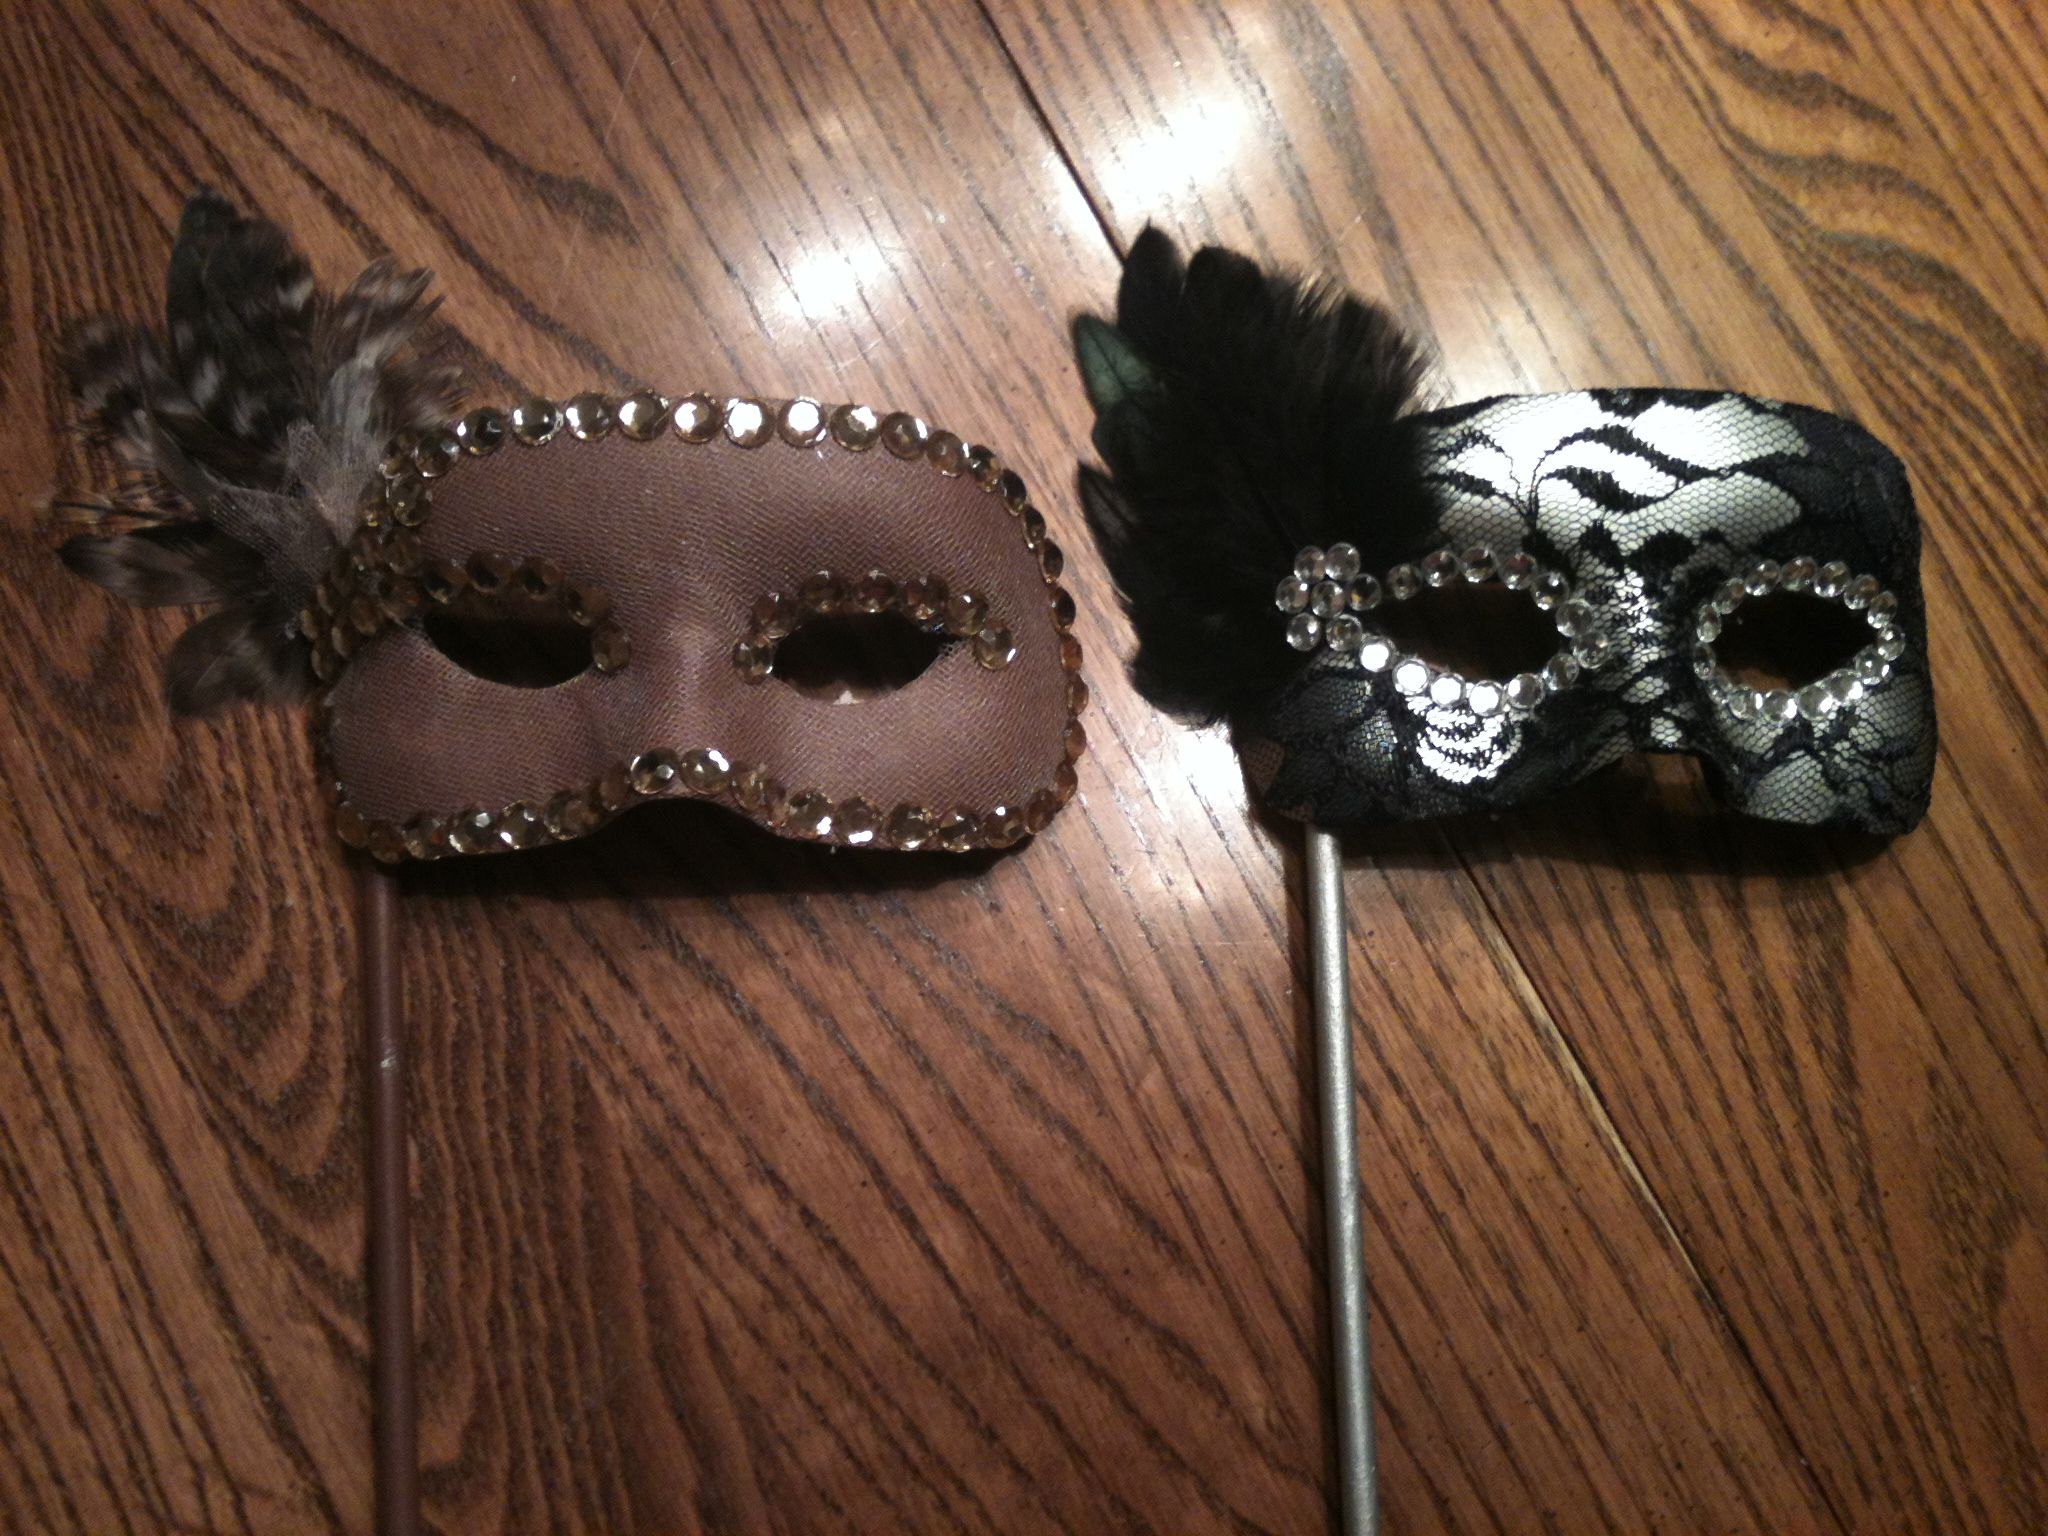 How To Decorate A Mask New Diy Masquerade Masks  My Style  Pinterest  Masquerade Masks Design Decoration